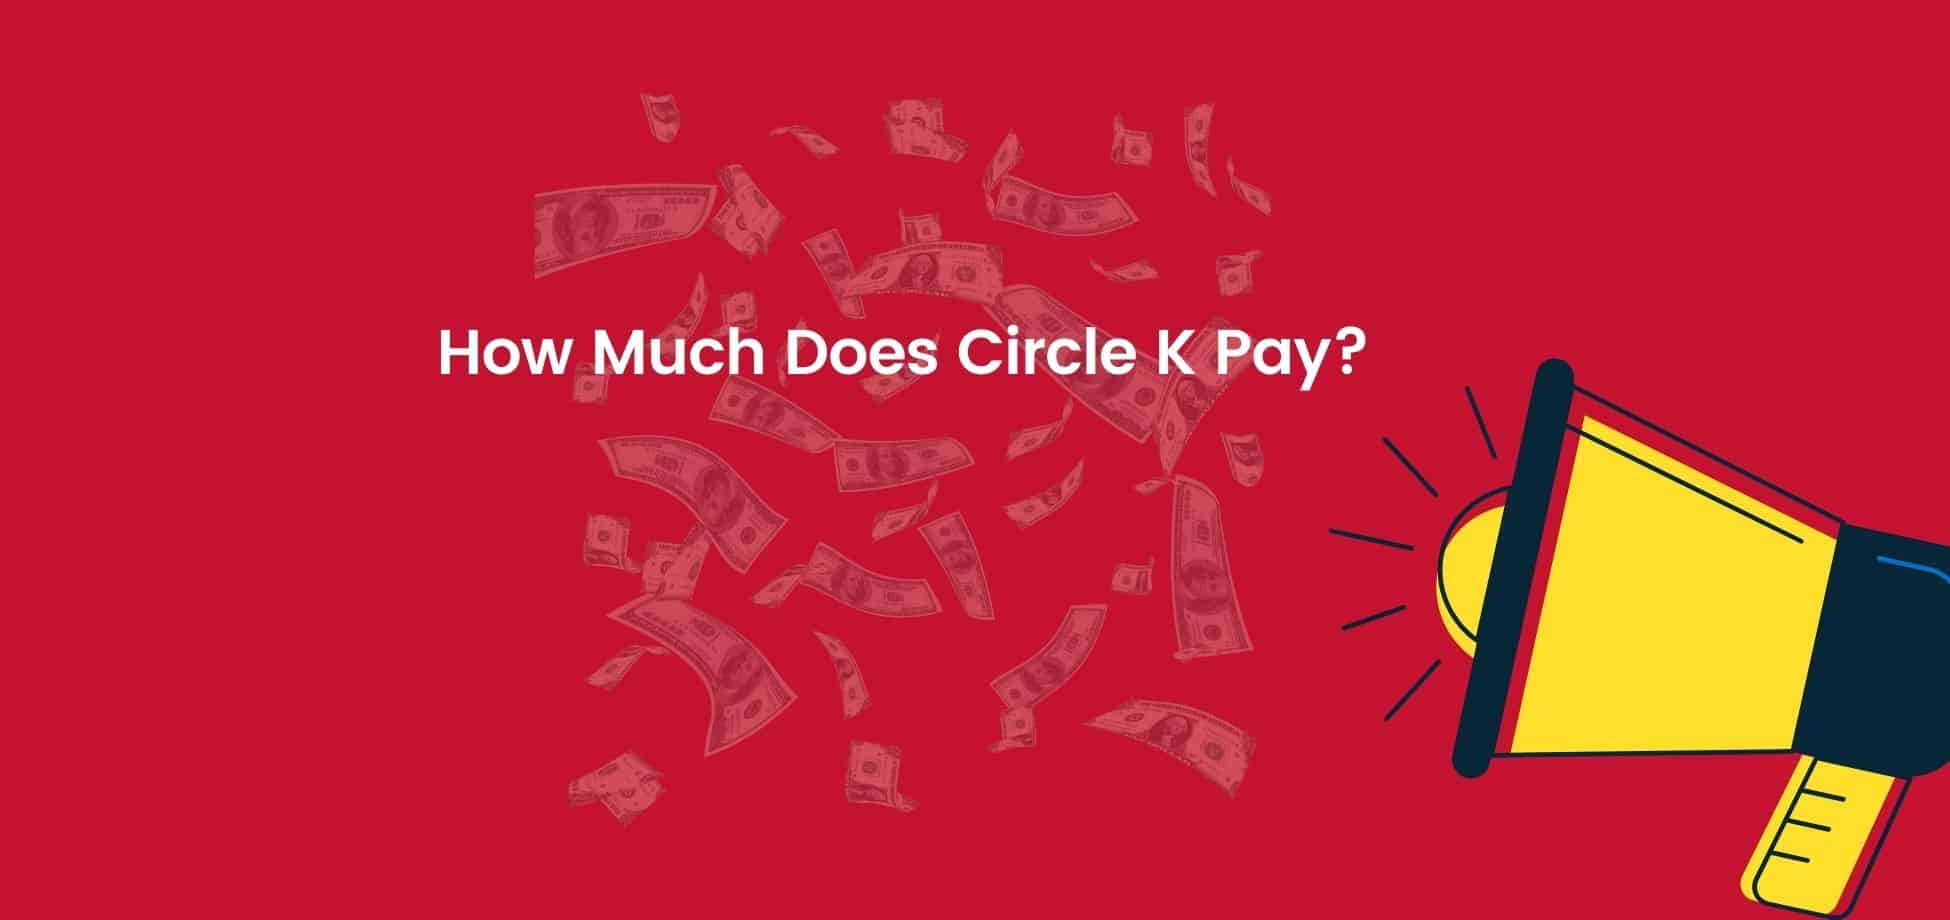 Circle K pays its workers slightly below average compared to other convenience store chains but offers an excellent chance for advancement within the company.